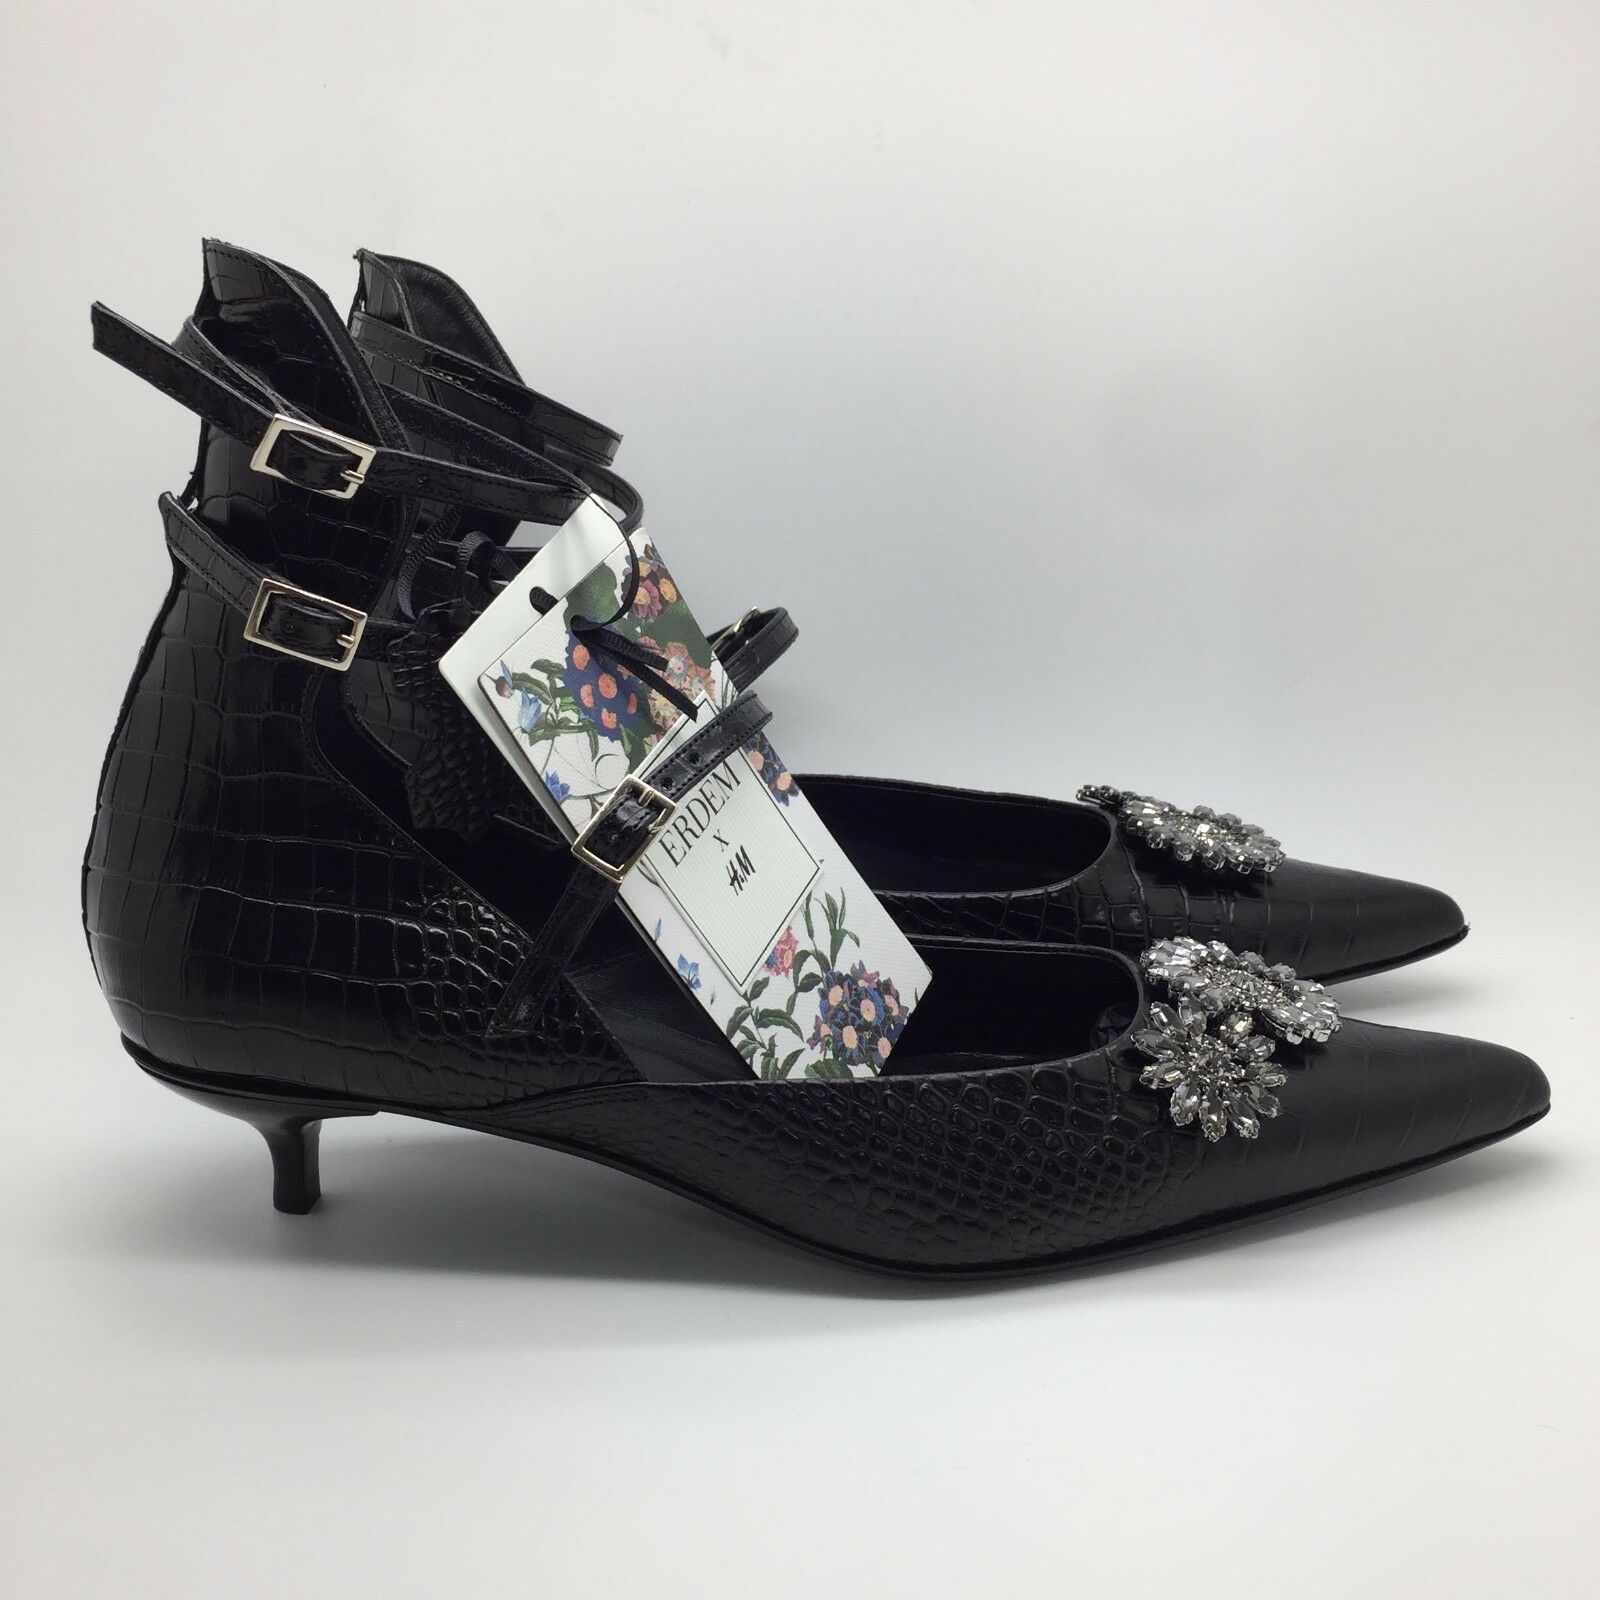 ERDEM H&M LEATHER PUMPS WITH RHINESSTONES